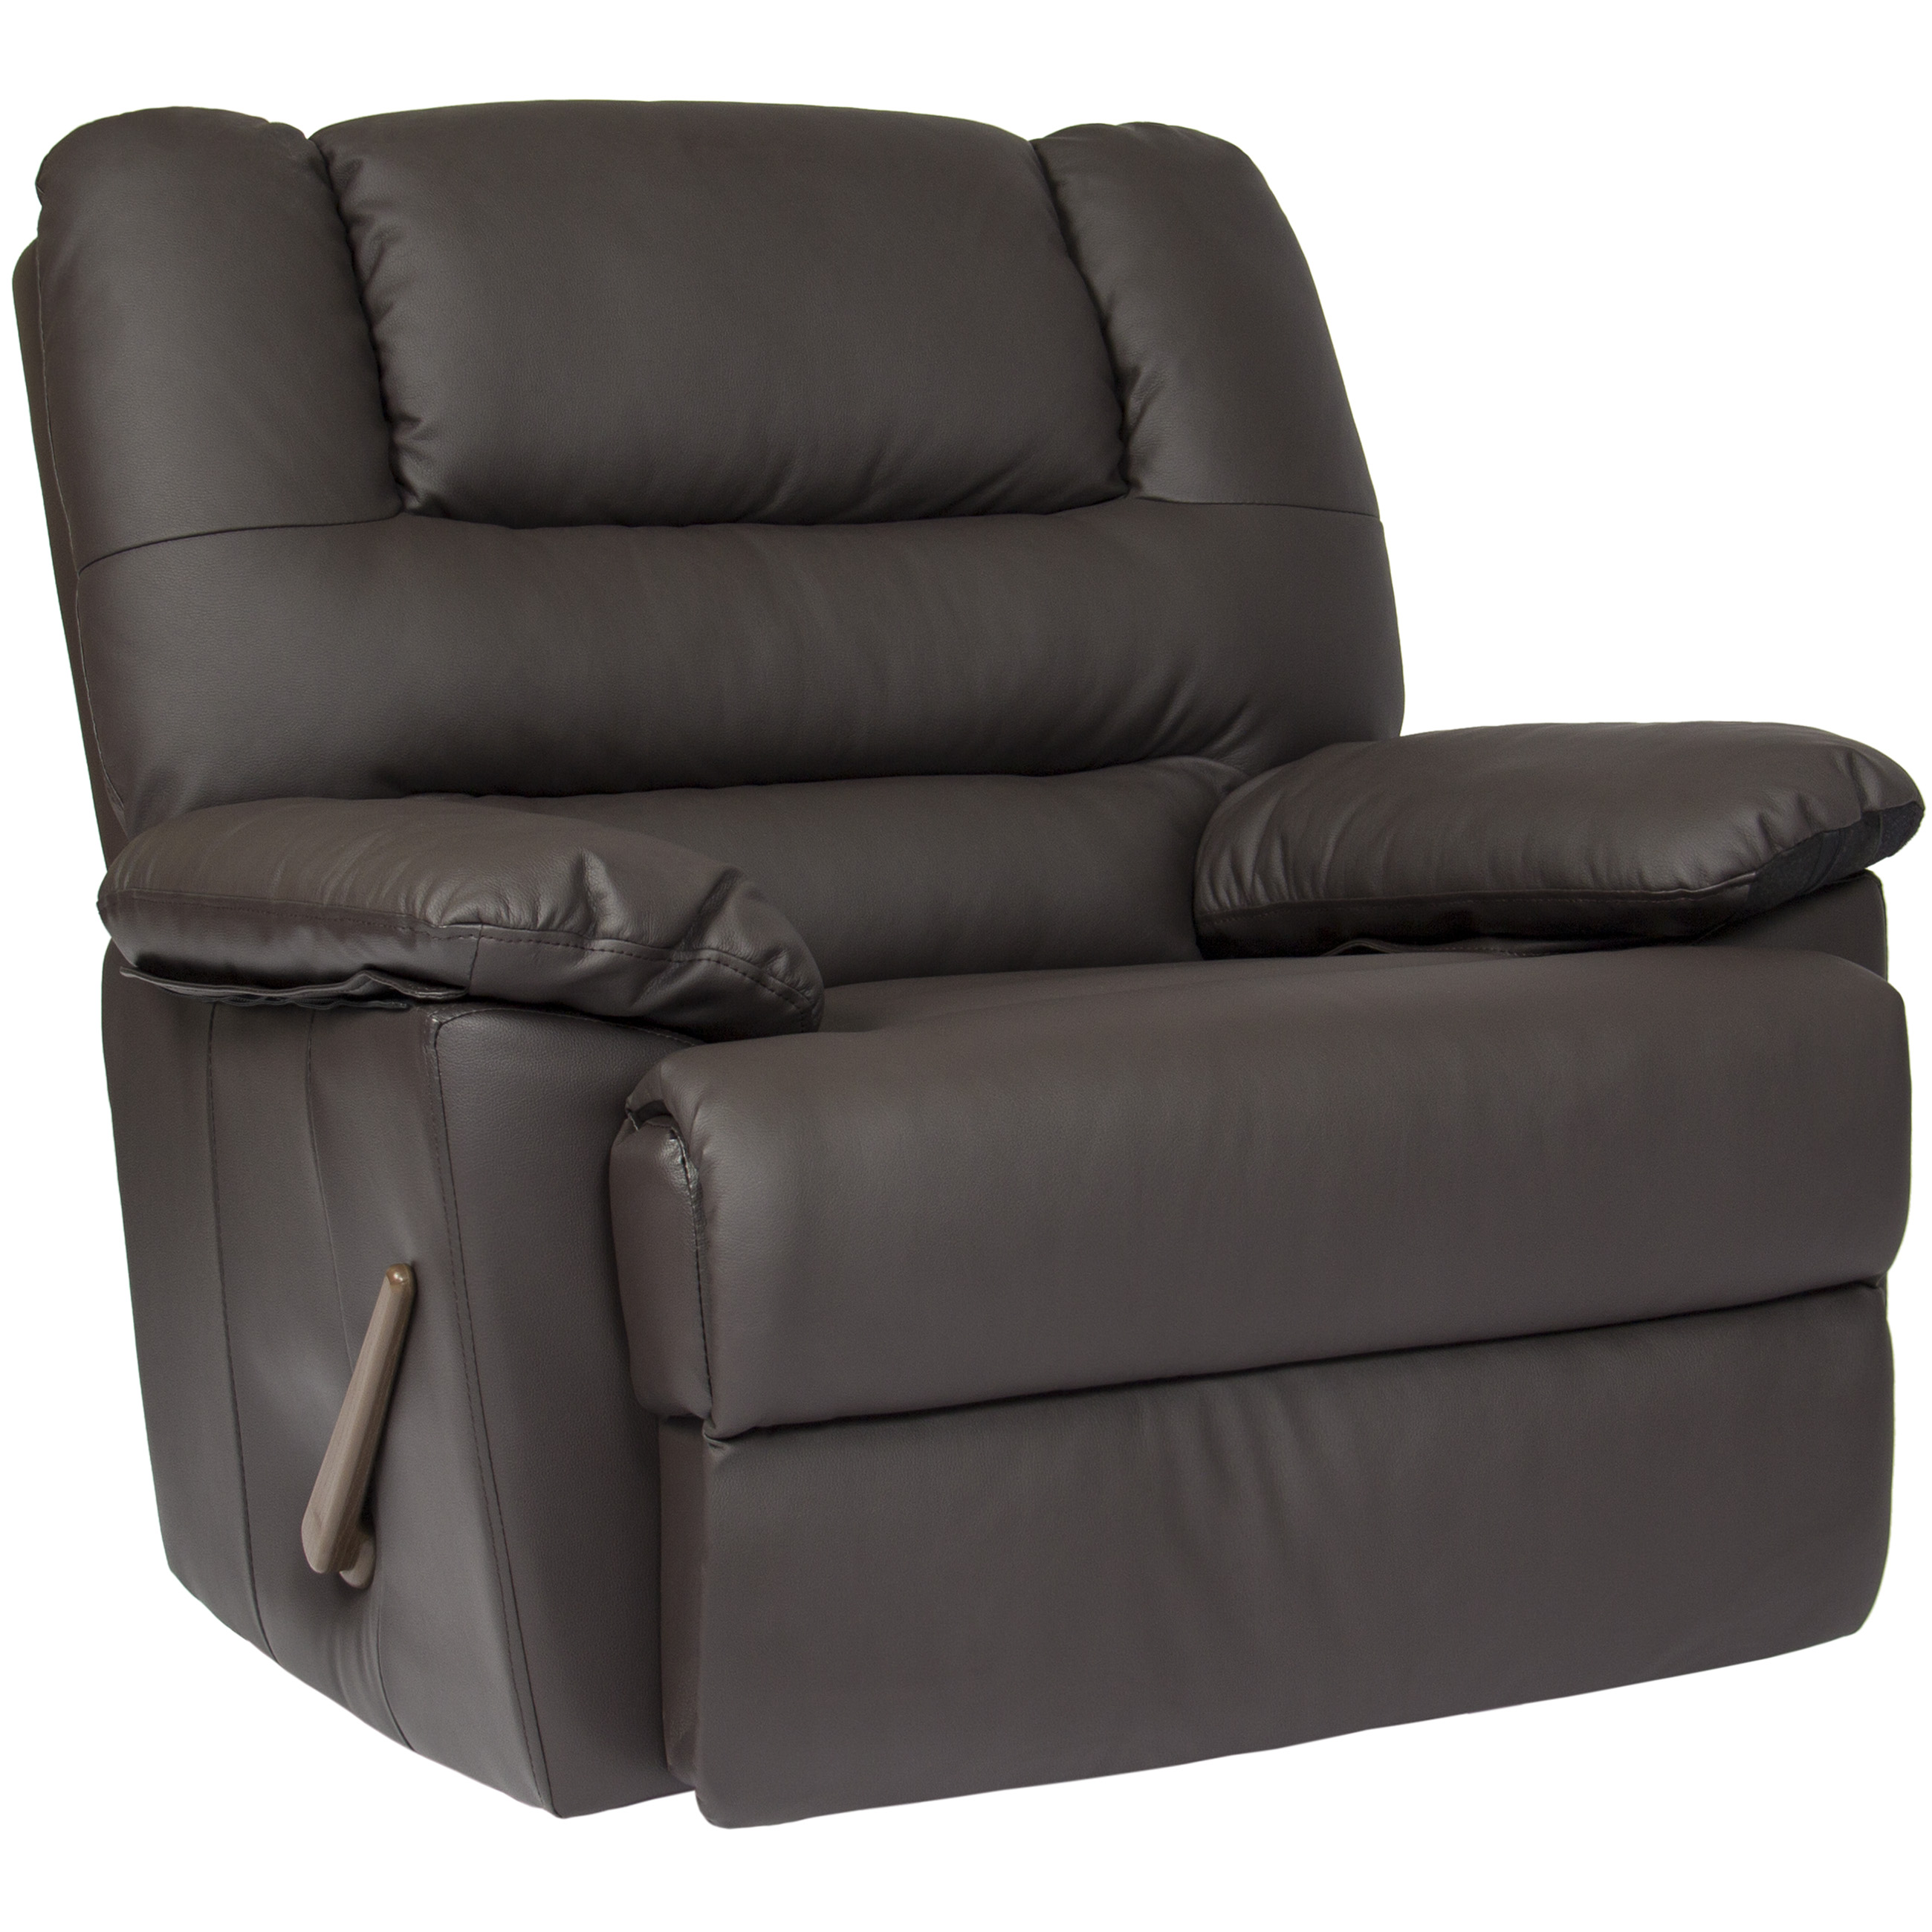 Kingston Faux Leather Recliner Multiple Colors Walmart